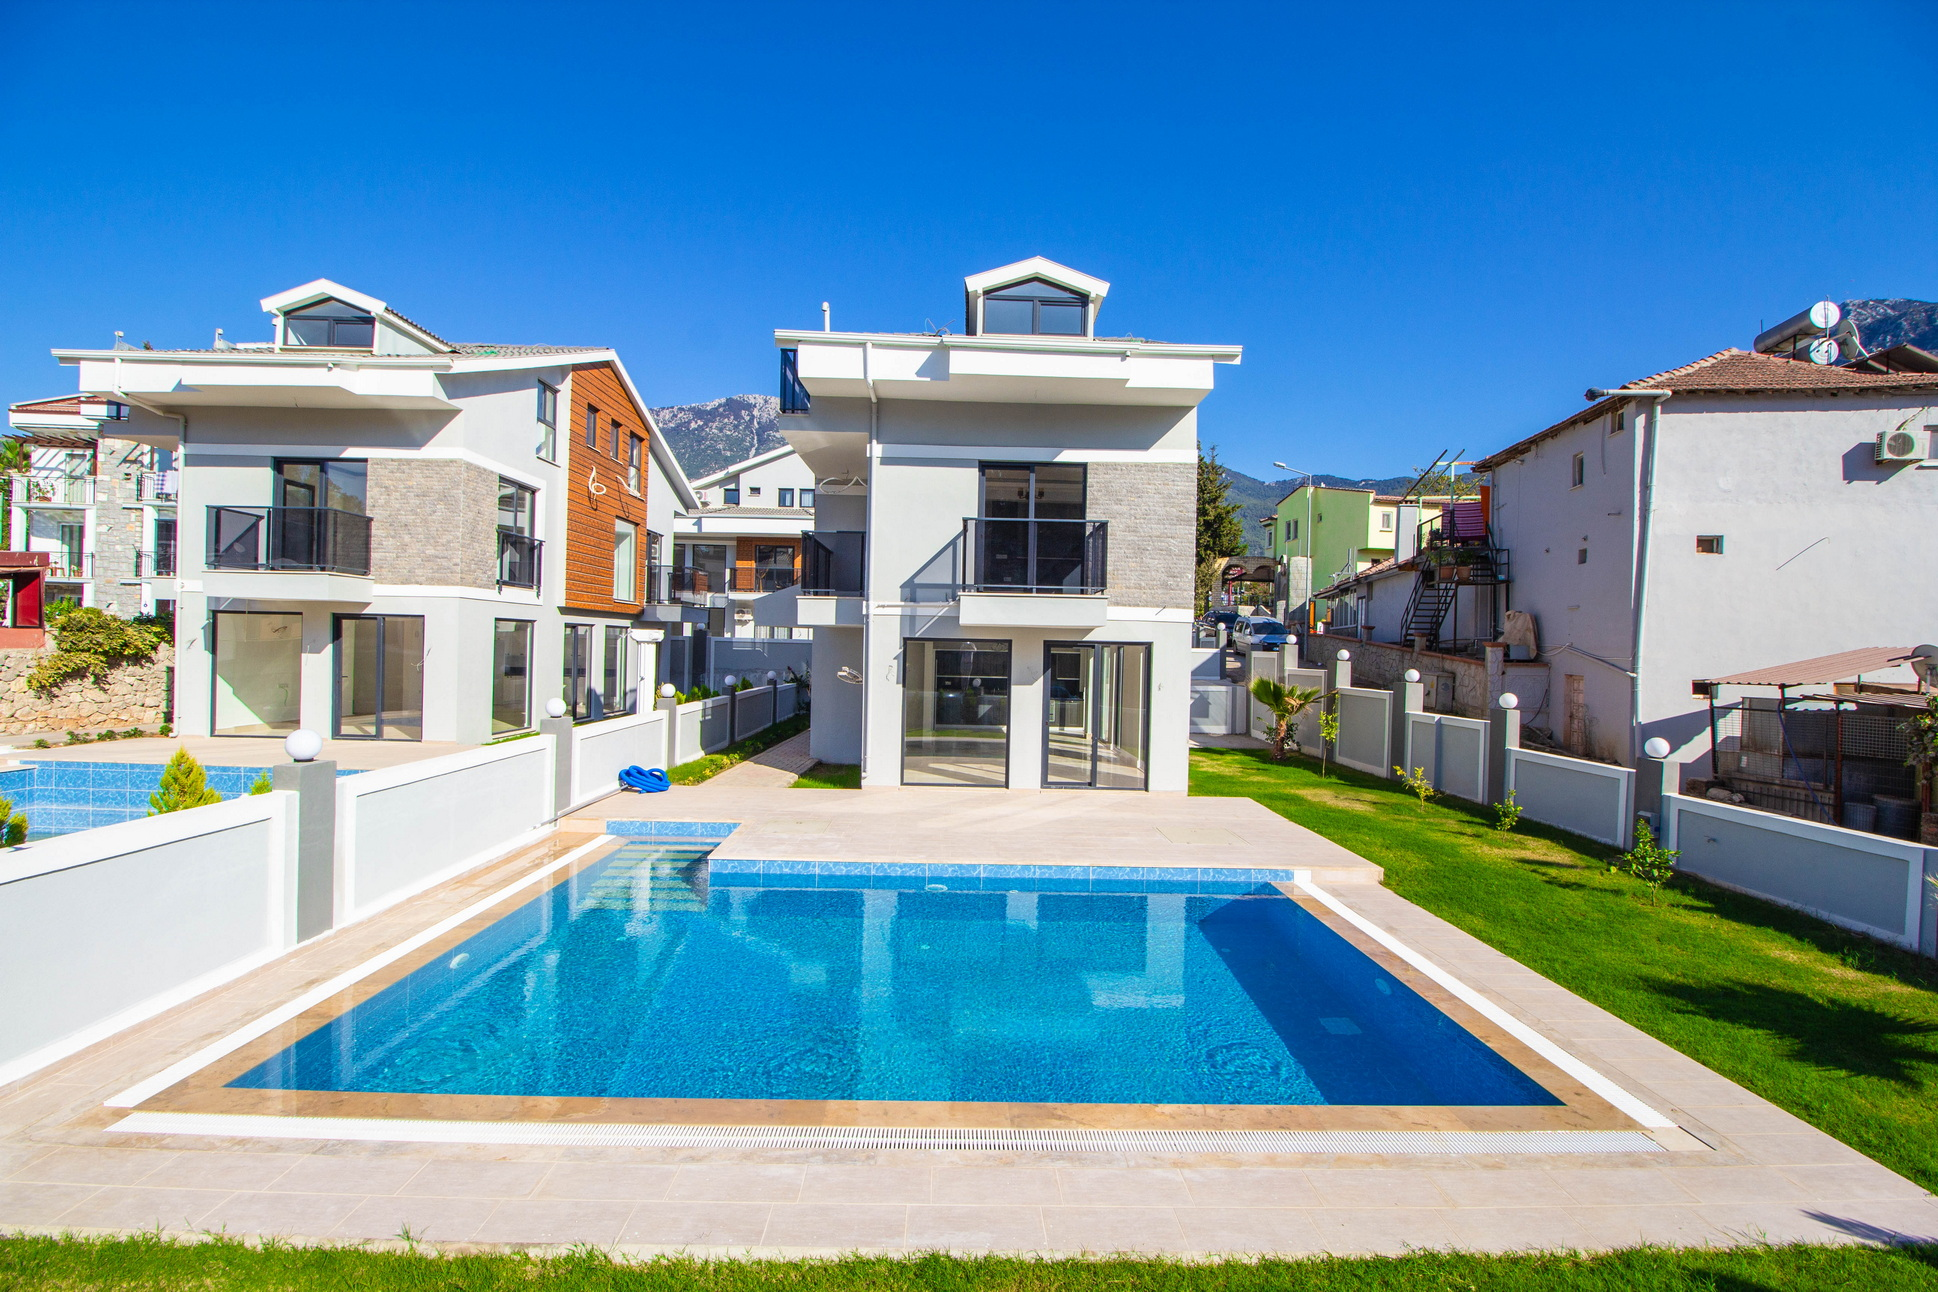 5 Bedroom Stuning Brand New Villas with Swimming Pool in Hisaronu For Sale